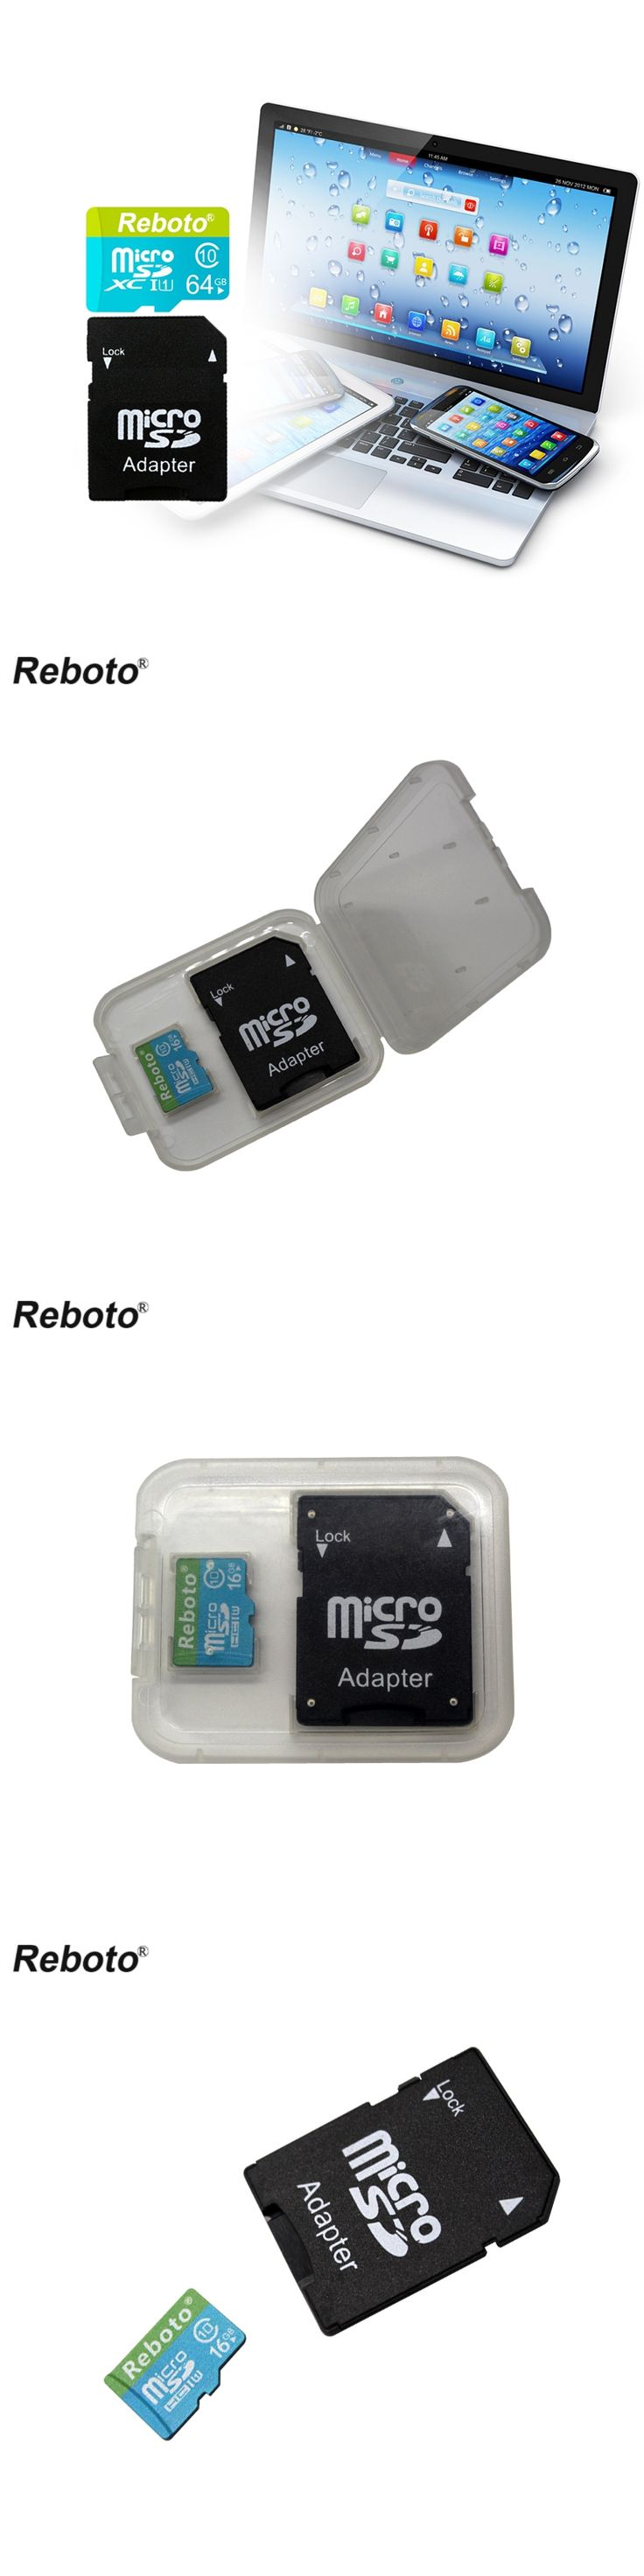 New Micro SD Card 4GB 8GB Mini sd Card 4gb 8gb Class 6 Memory Card Flash TF card for cell Phone Tablet Camera Free Adapter